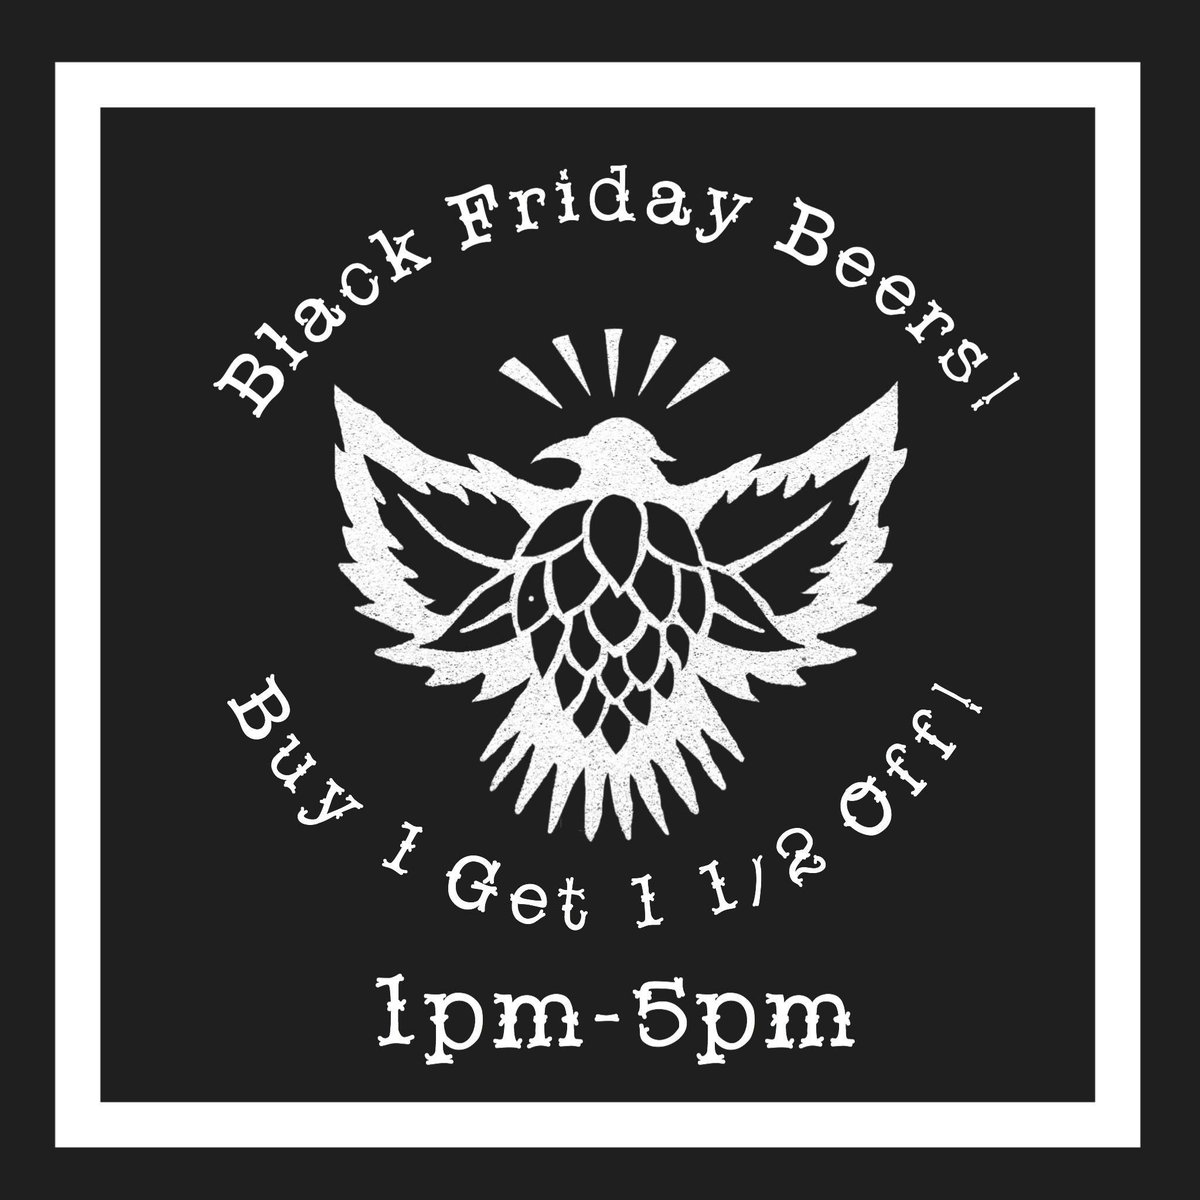 Old Soul Brewing on Twitter: